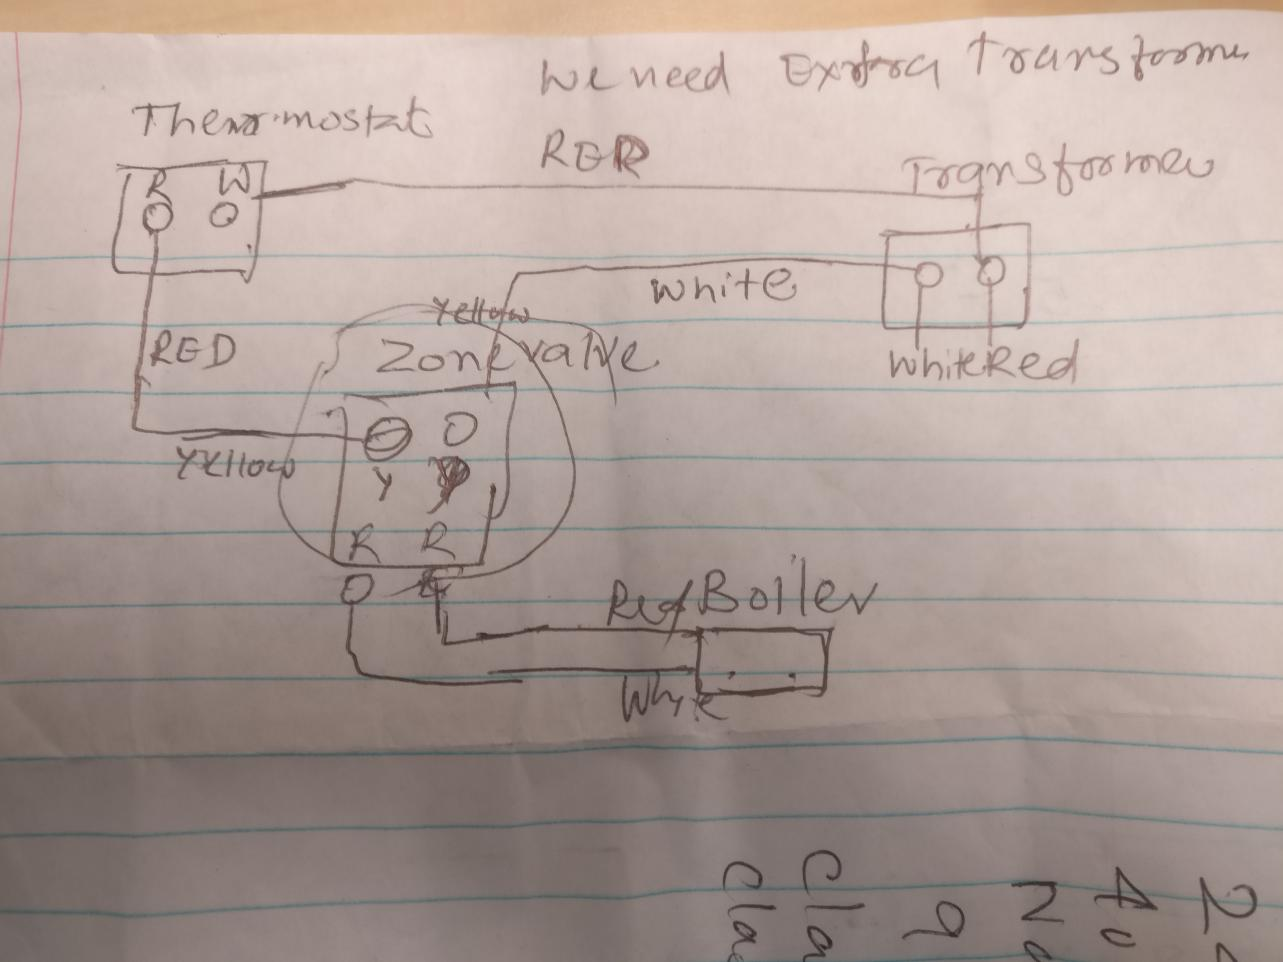 Wiring Two Zone Valve With Weil Mclain Water Boiler Doityourself Transformers In Series Add 24v 40va 120 To 24 V Transformer Power Up Both Please See Picture Of What I Am Planning Wire And Let Me Know If It Is Correct